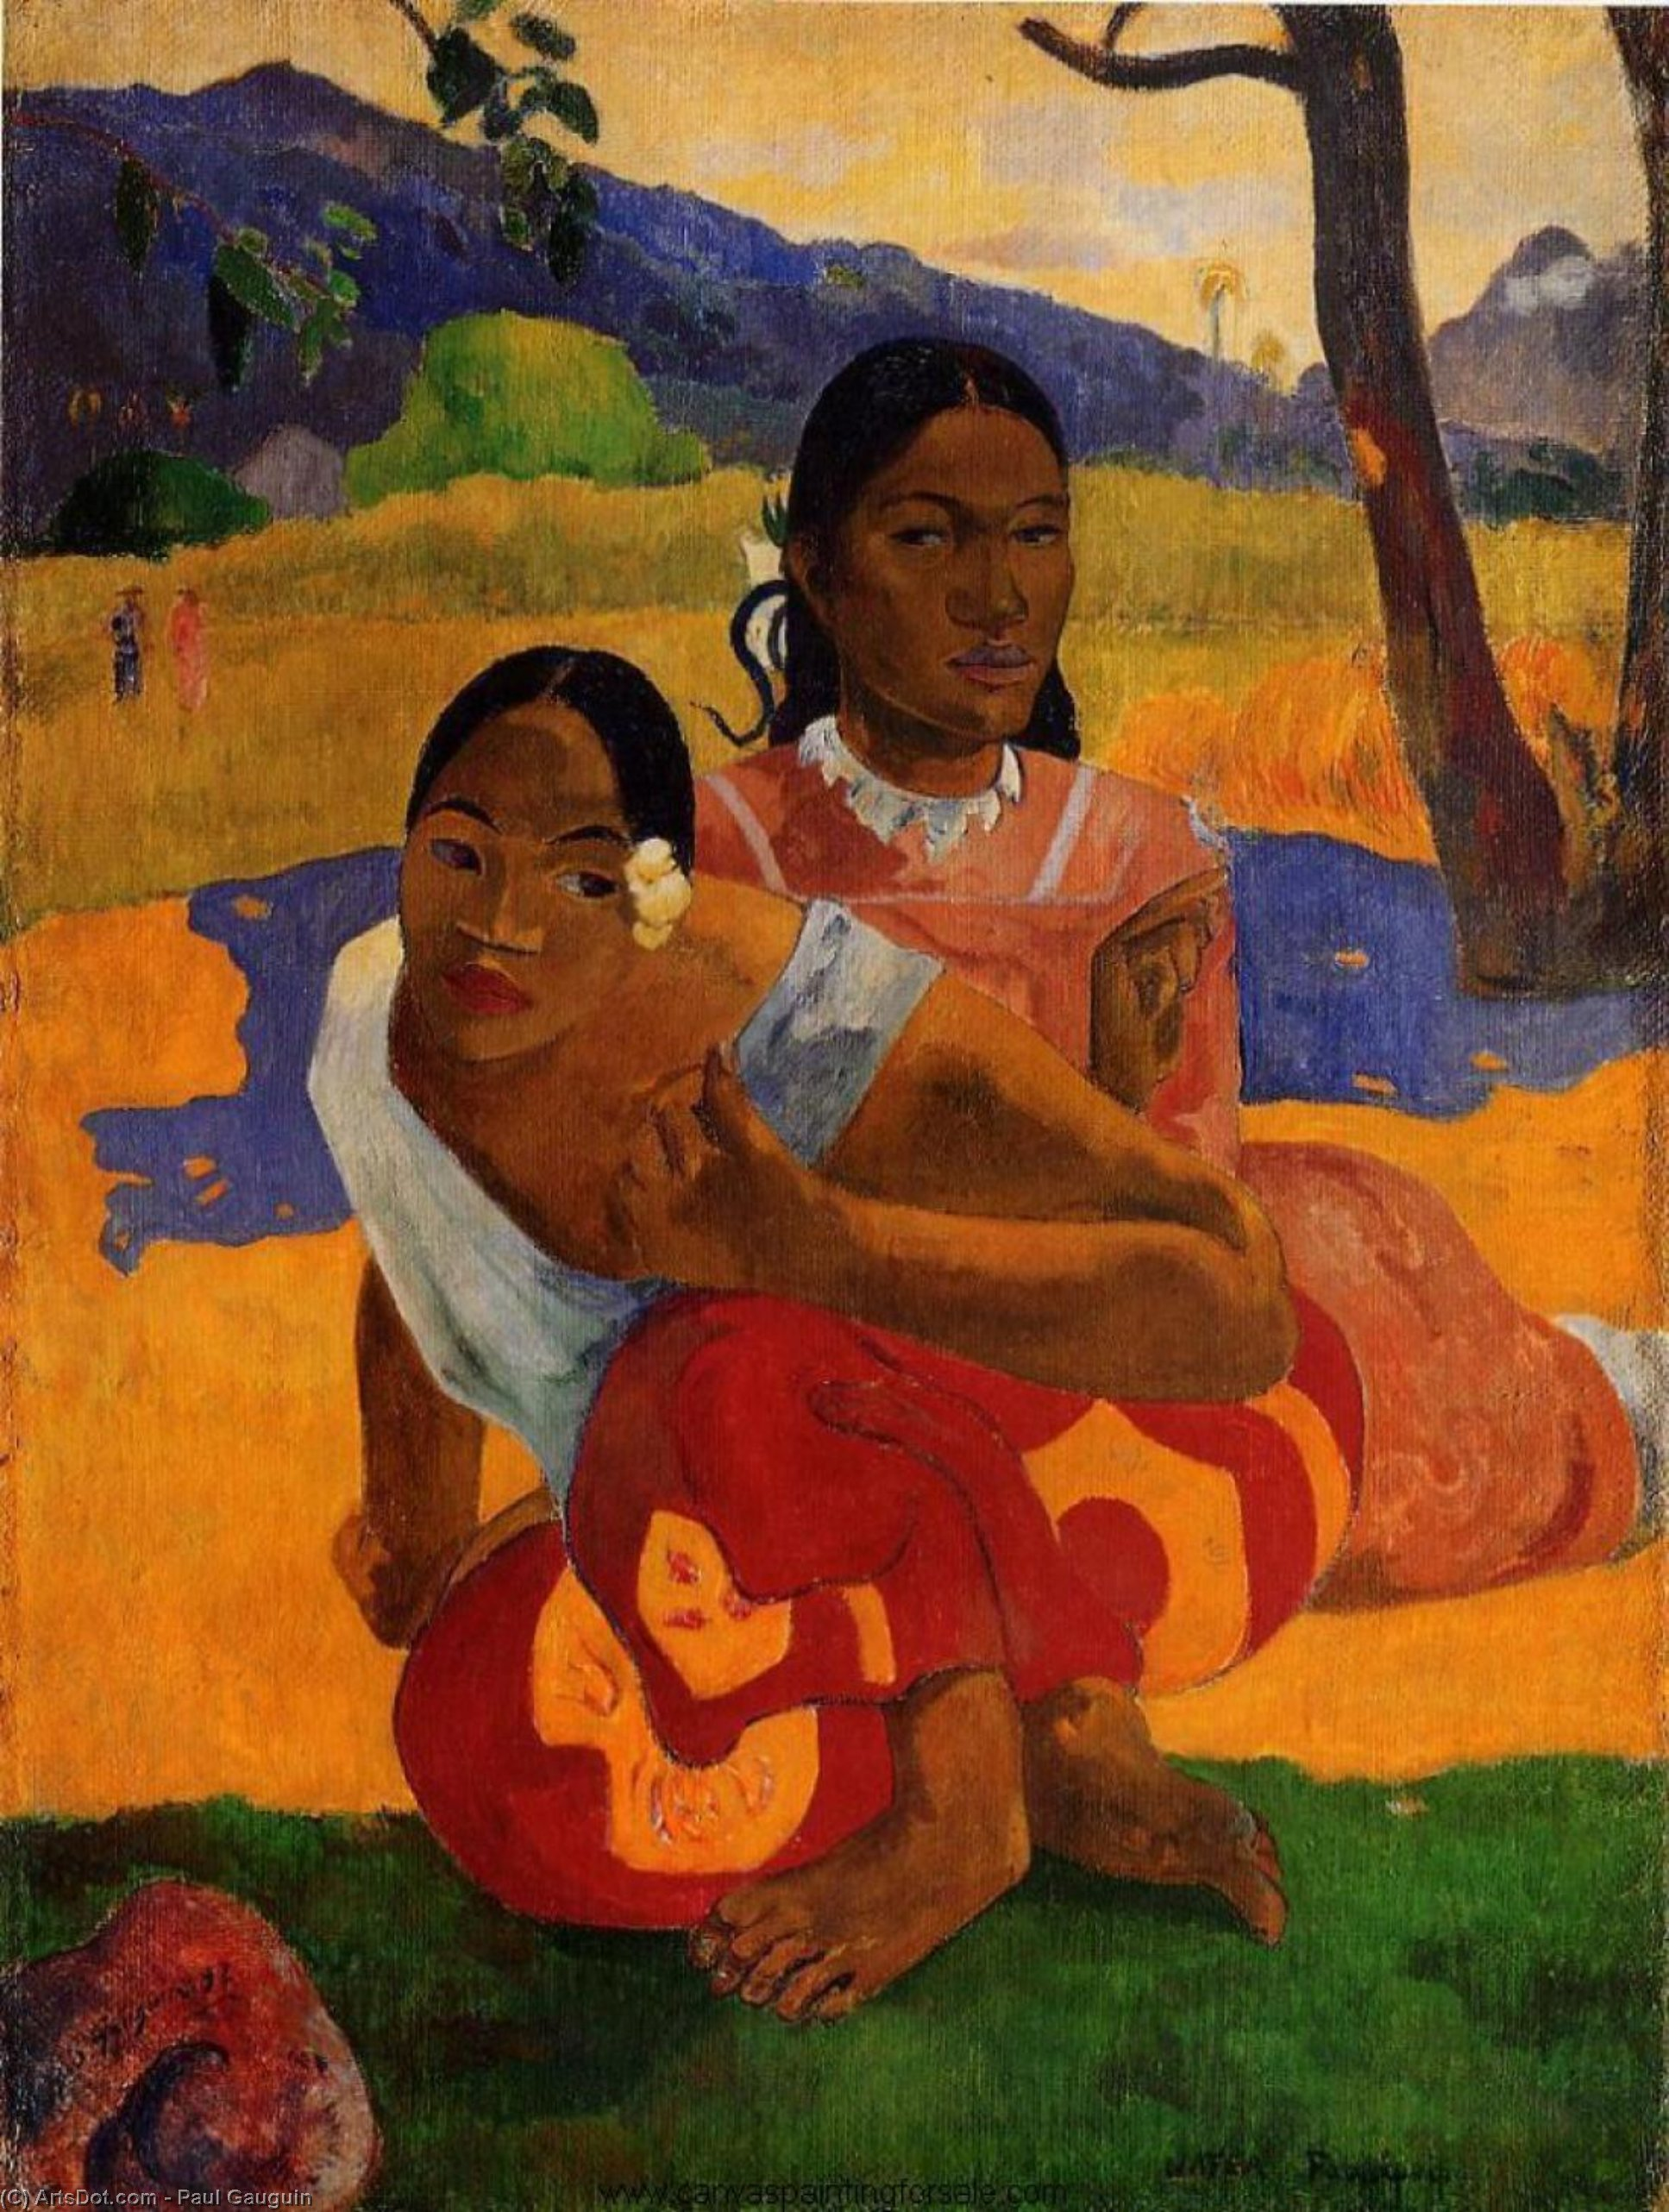 Wikioo.org - The Encyclopedia of Fine Arts - Painting, Artwork by Paul Gauguin - nafeaffaa ipolpo